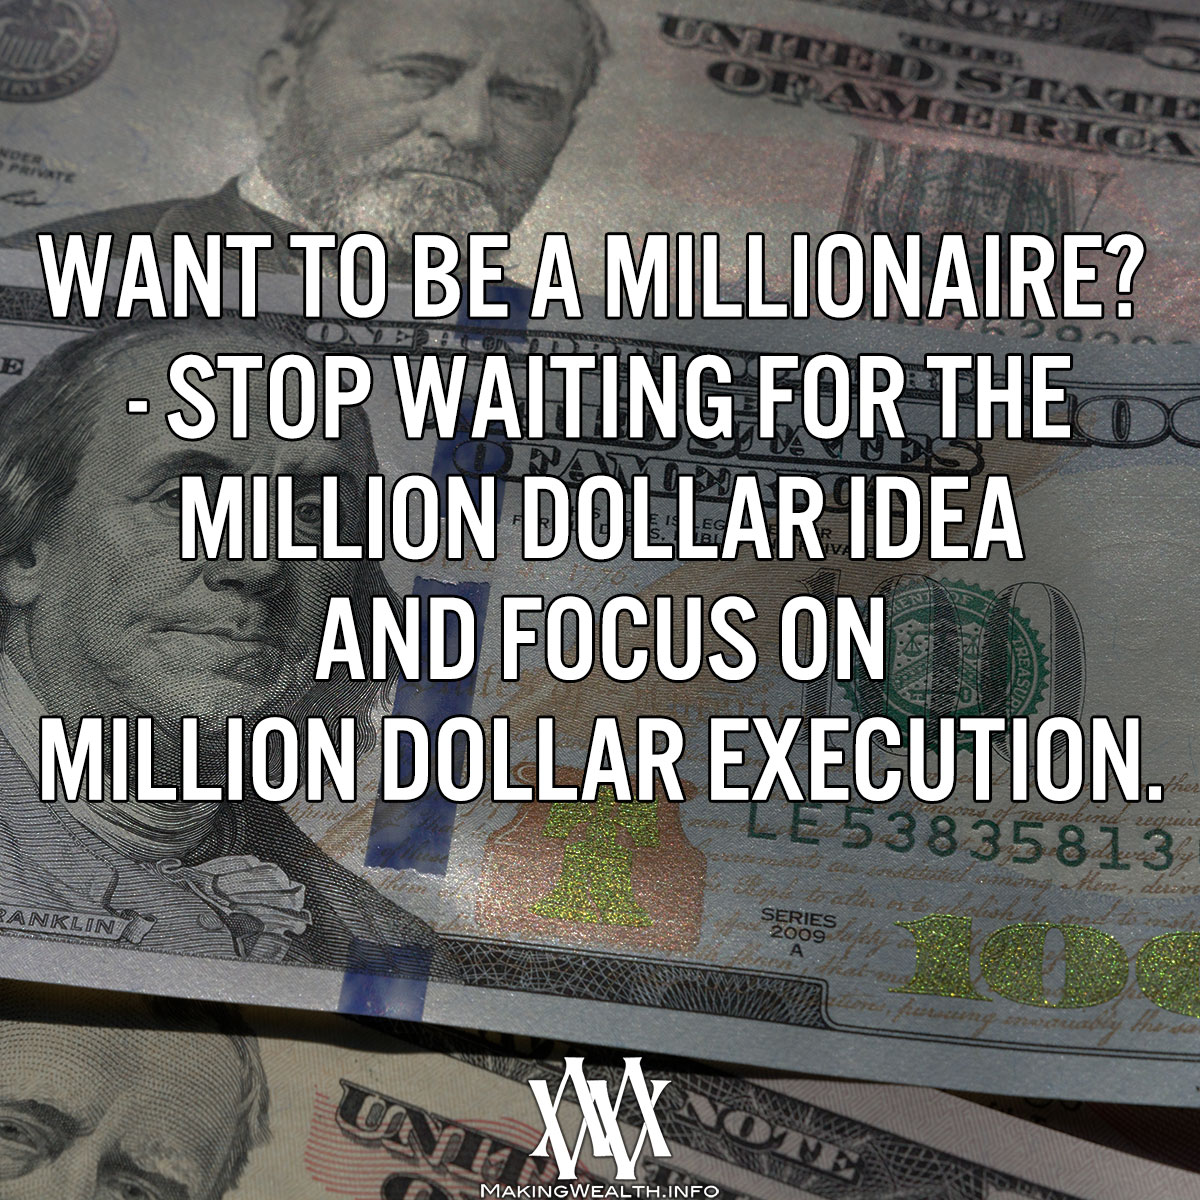 Want To Be A Millionaire - Stop Waiting For The Million Dollar Idea And Focus On Million Dollar Execution